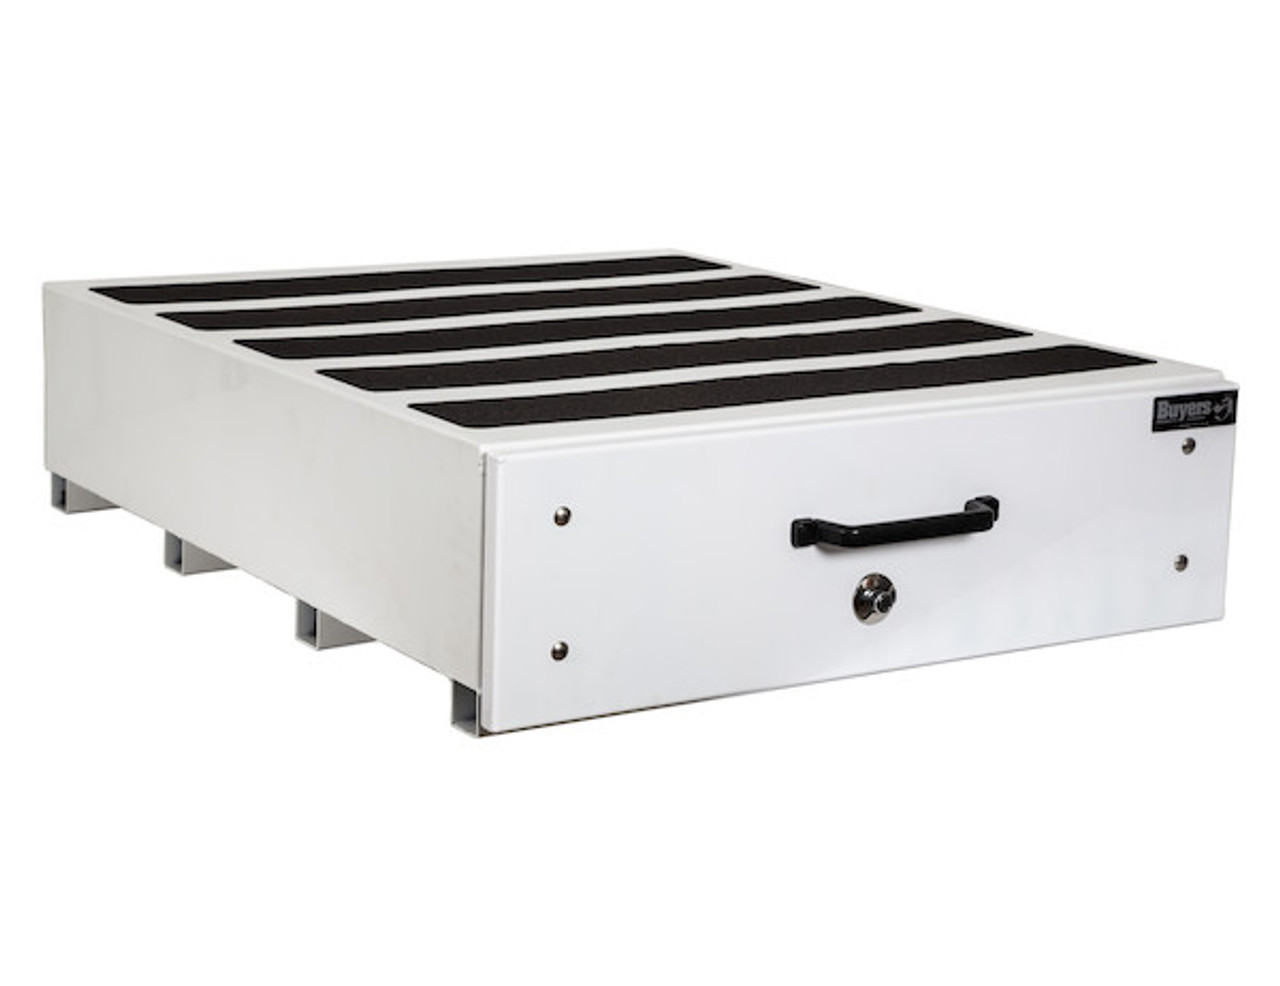 """1718430 BUYERS SMOOTH WHITE ALUMINUM SLIDE OUT TRUCK BED TOOLBOX 12""""Hx48""""Dx40""""W PICTURE # 1"""